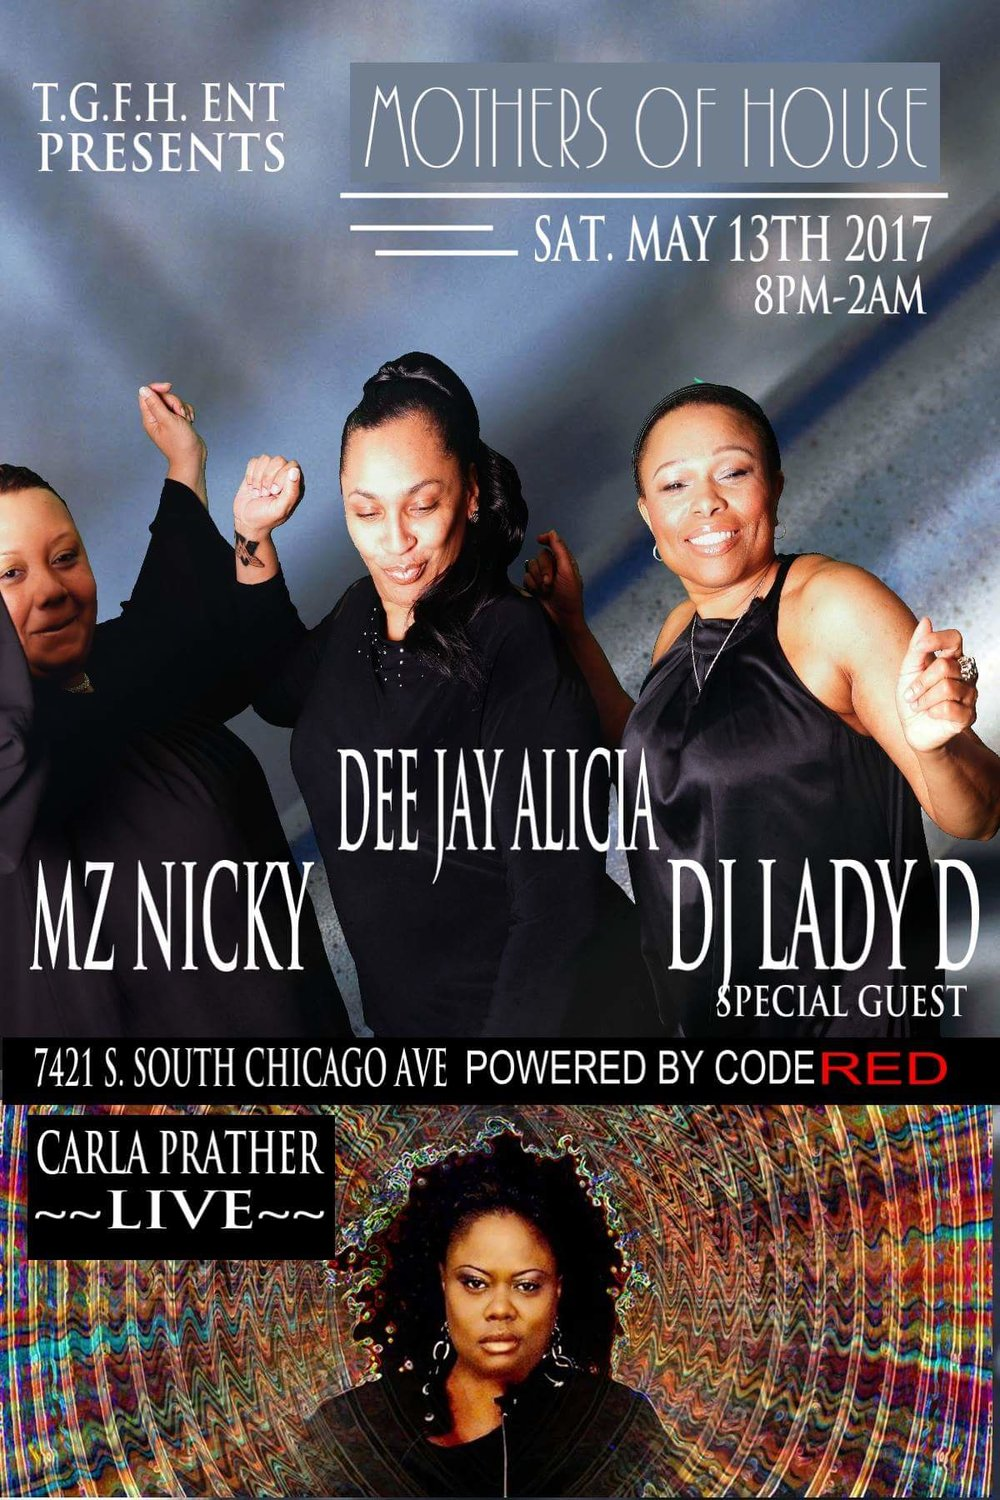 Saturday, May 13th! Join the Mothers of House!!!